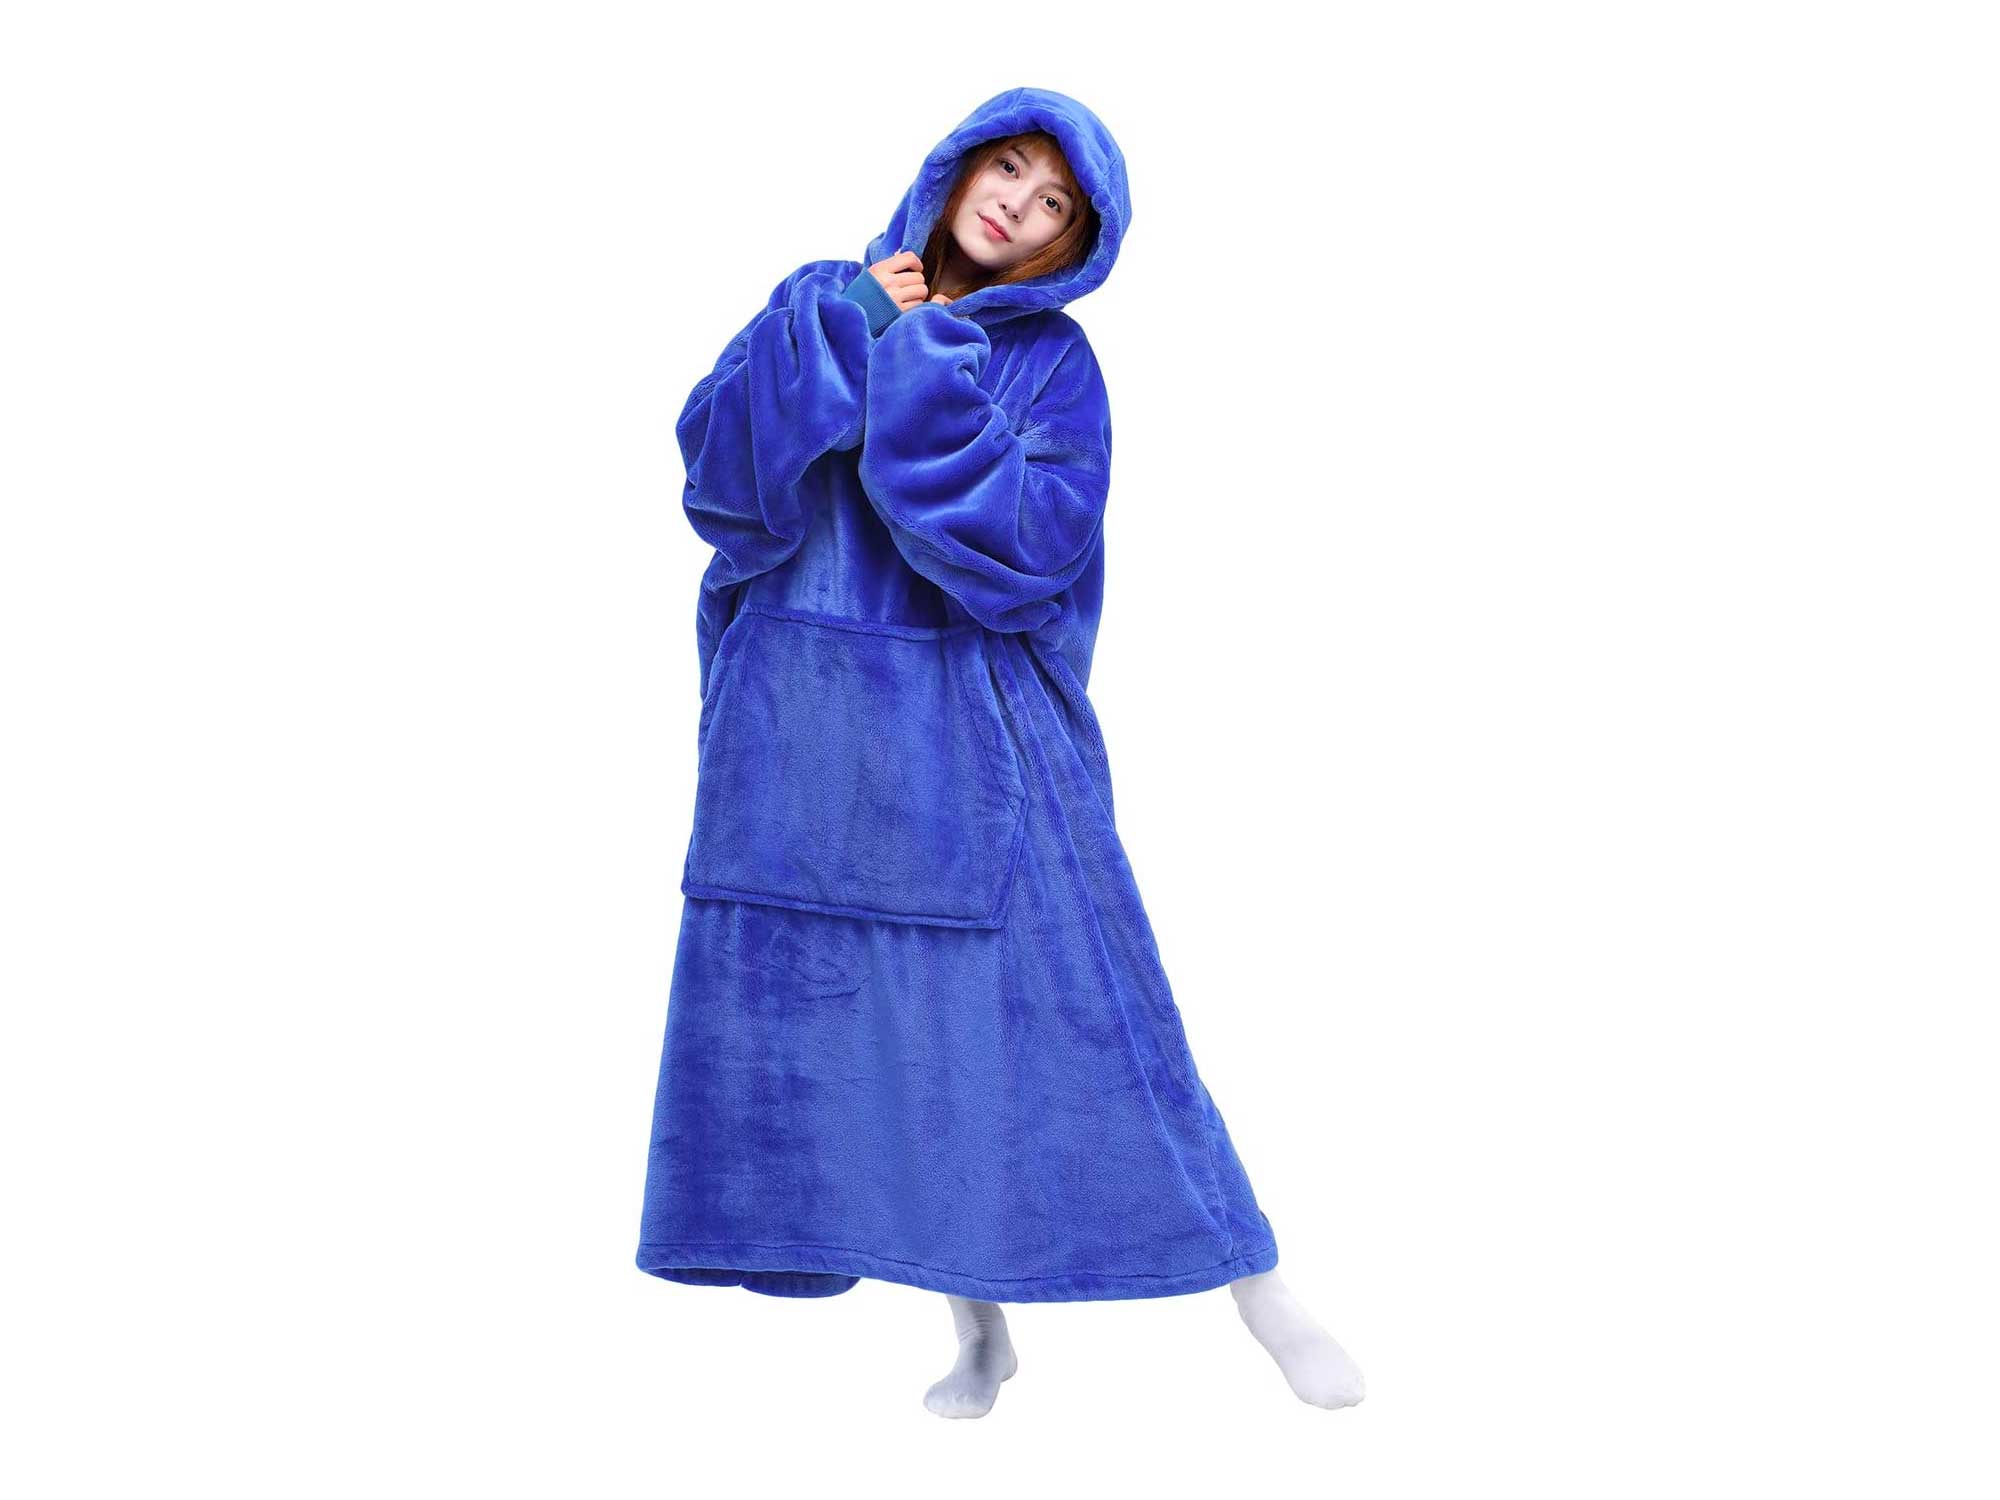 Waitu Wearable Blanket Sweatshirt for Women and Men, Super Warm and Cozy Big Blanket Hoodie, Thick Flannel Blanket with Sleeves and Giant Pocket - Blue